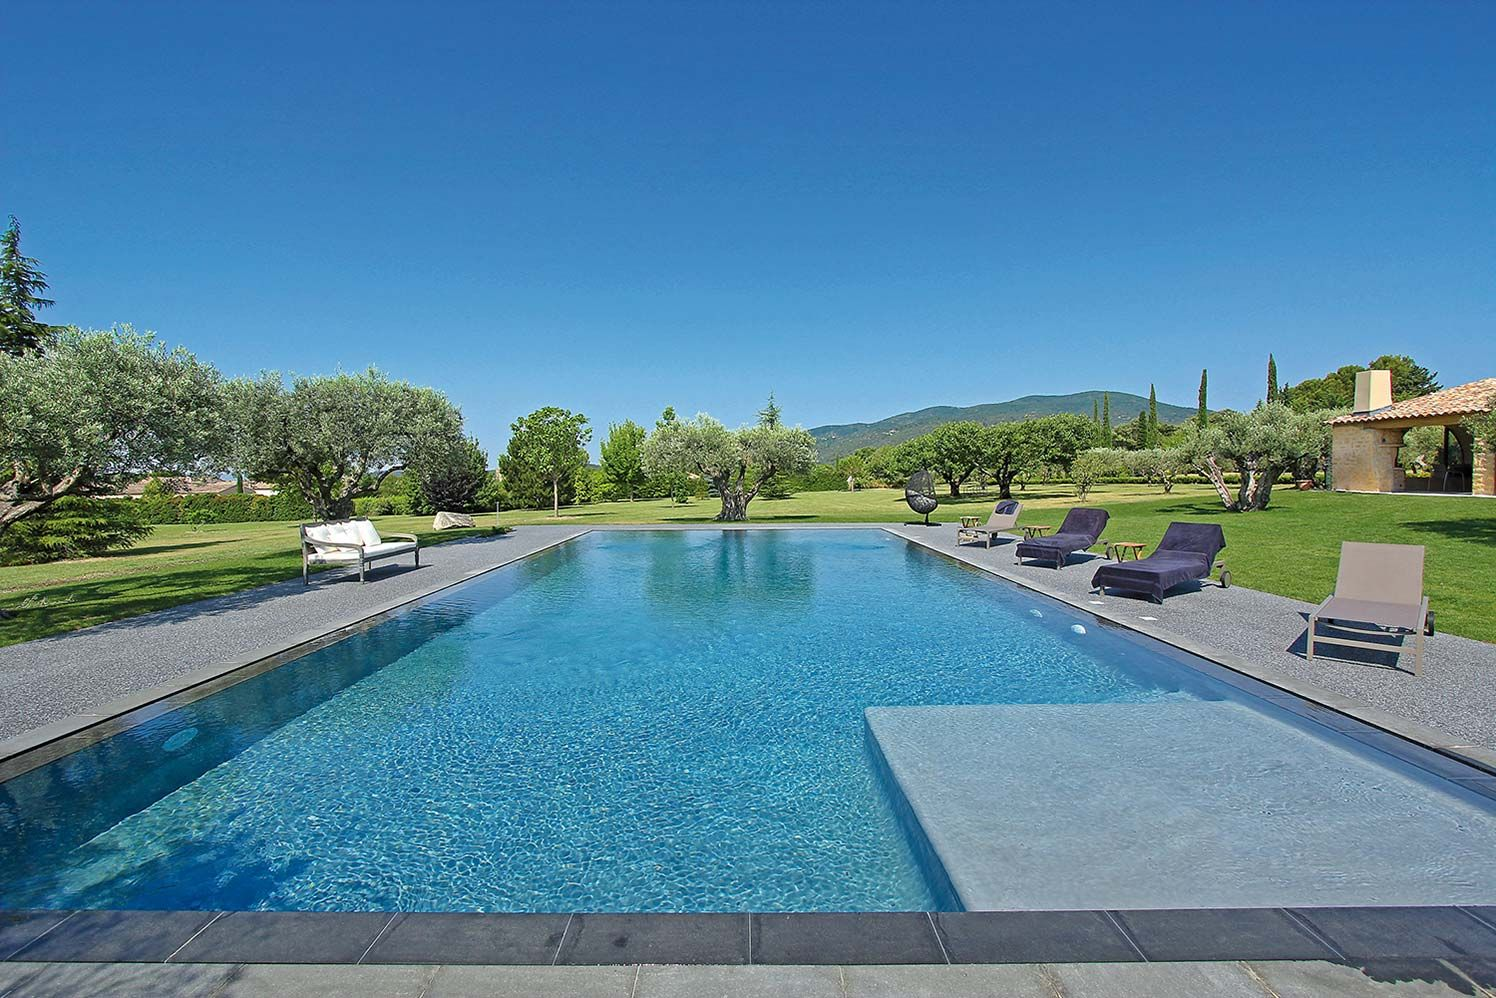 La piscine petite note contemporaine provence and for Piscine a debordement